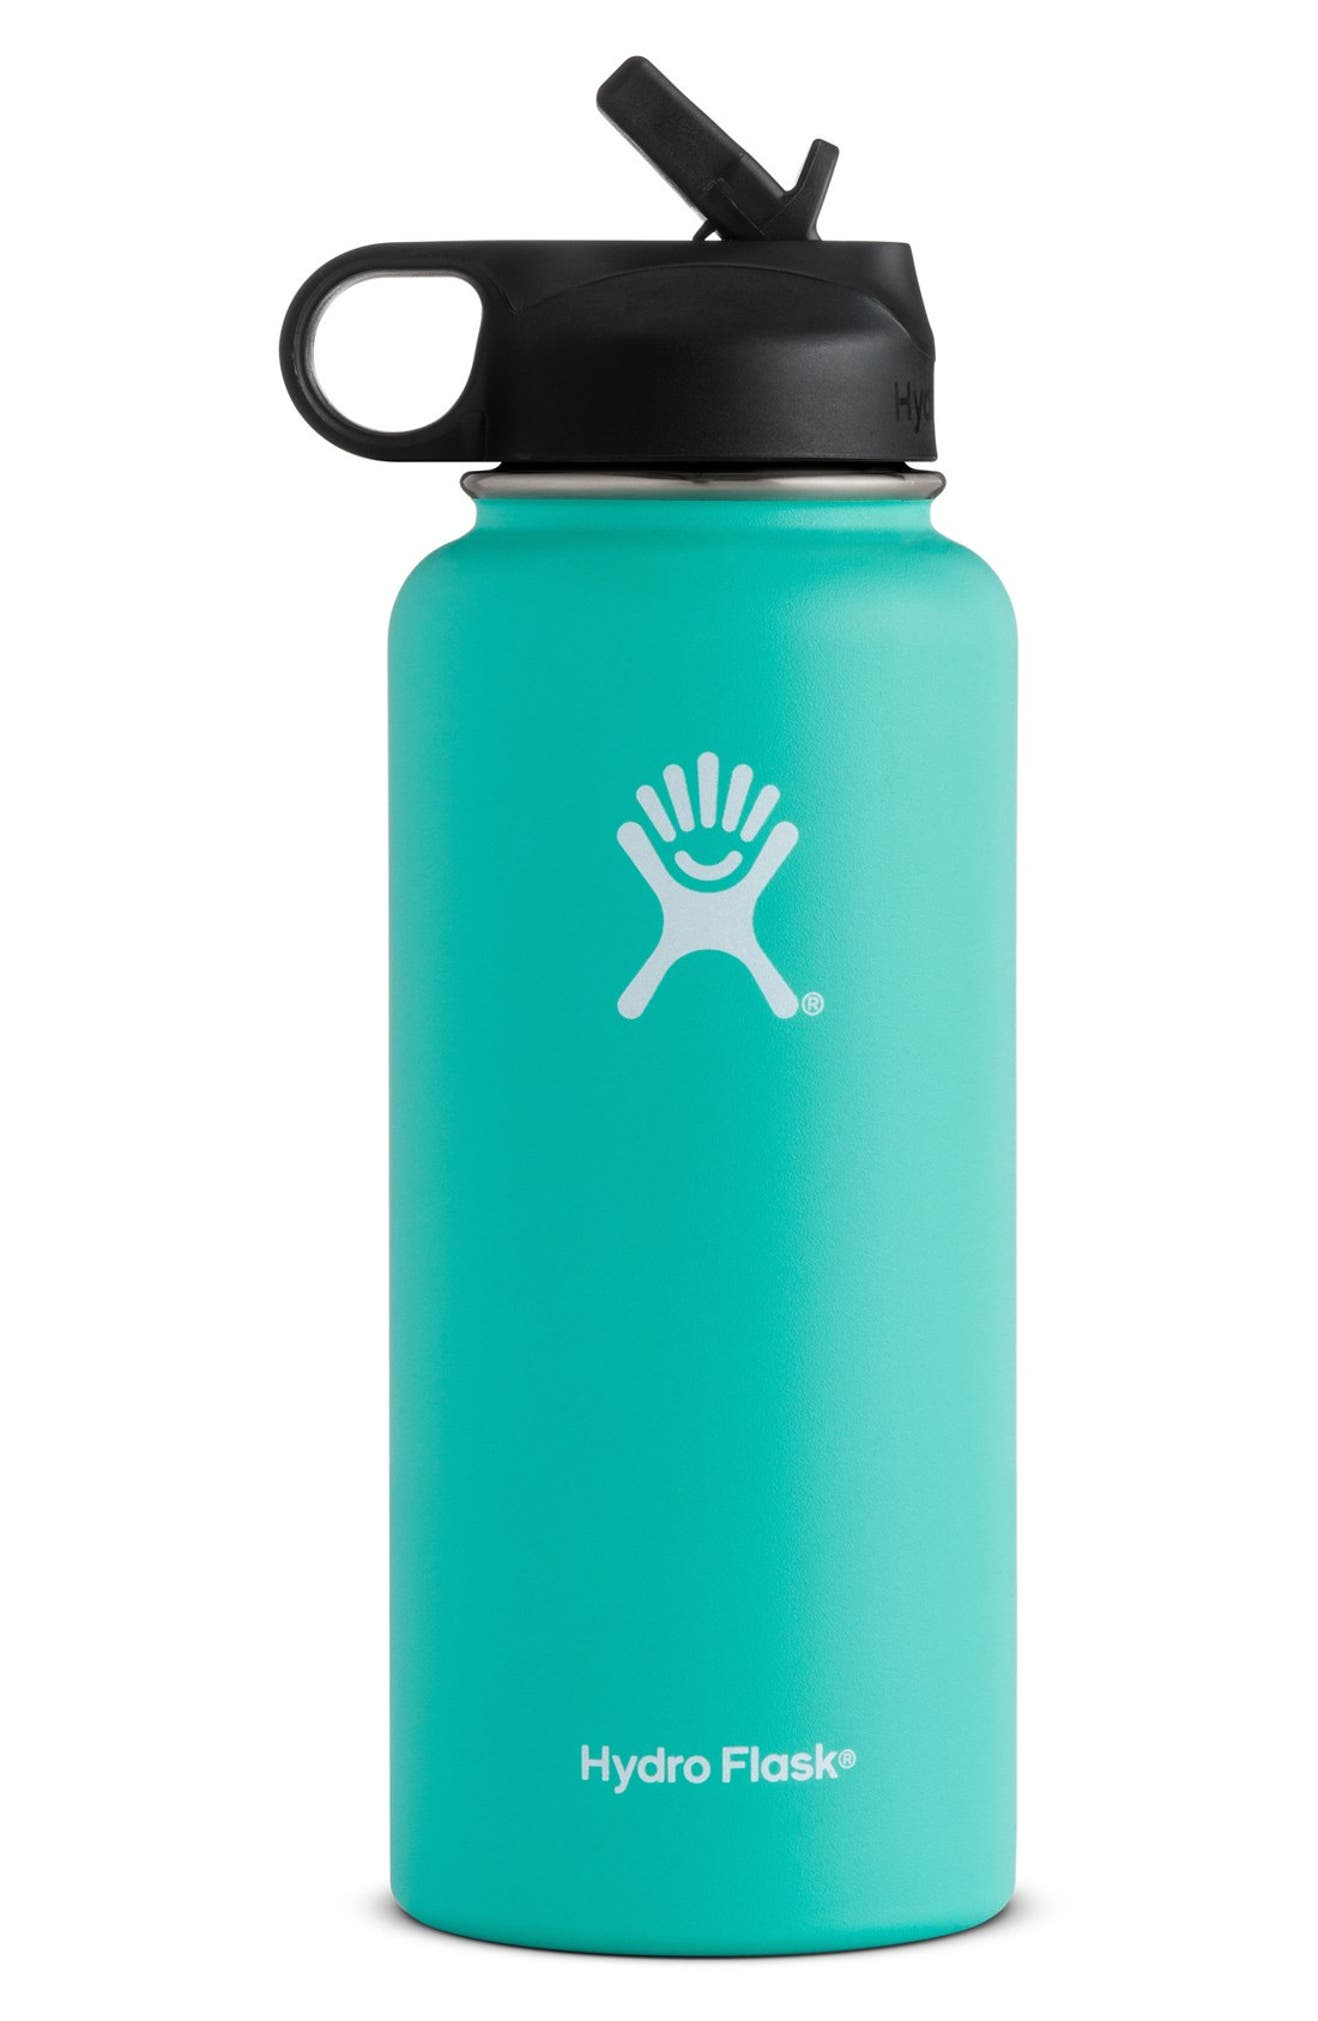 Hydro Flask 32-Ounce Wide Mouth Bottle with Straw Lid  3ccbaabcf